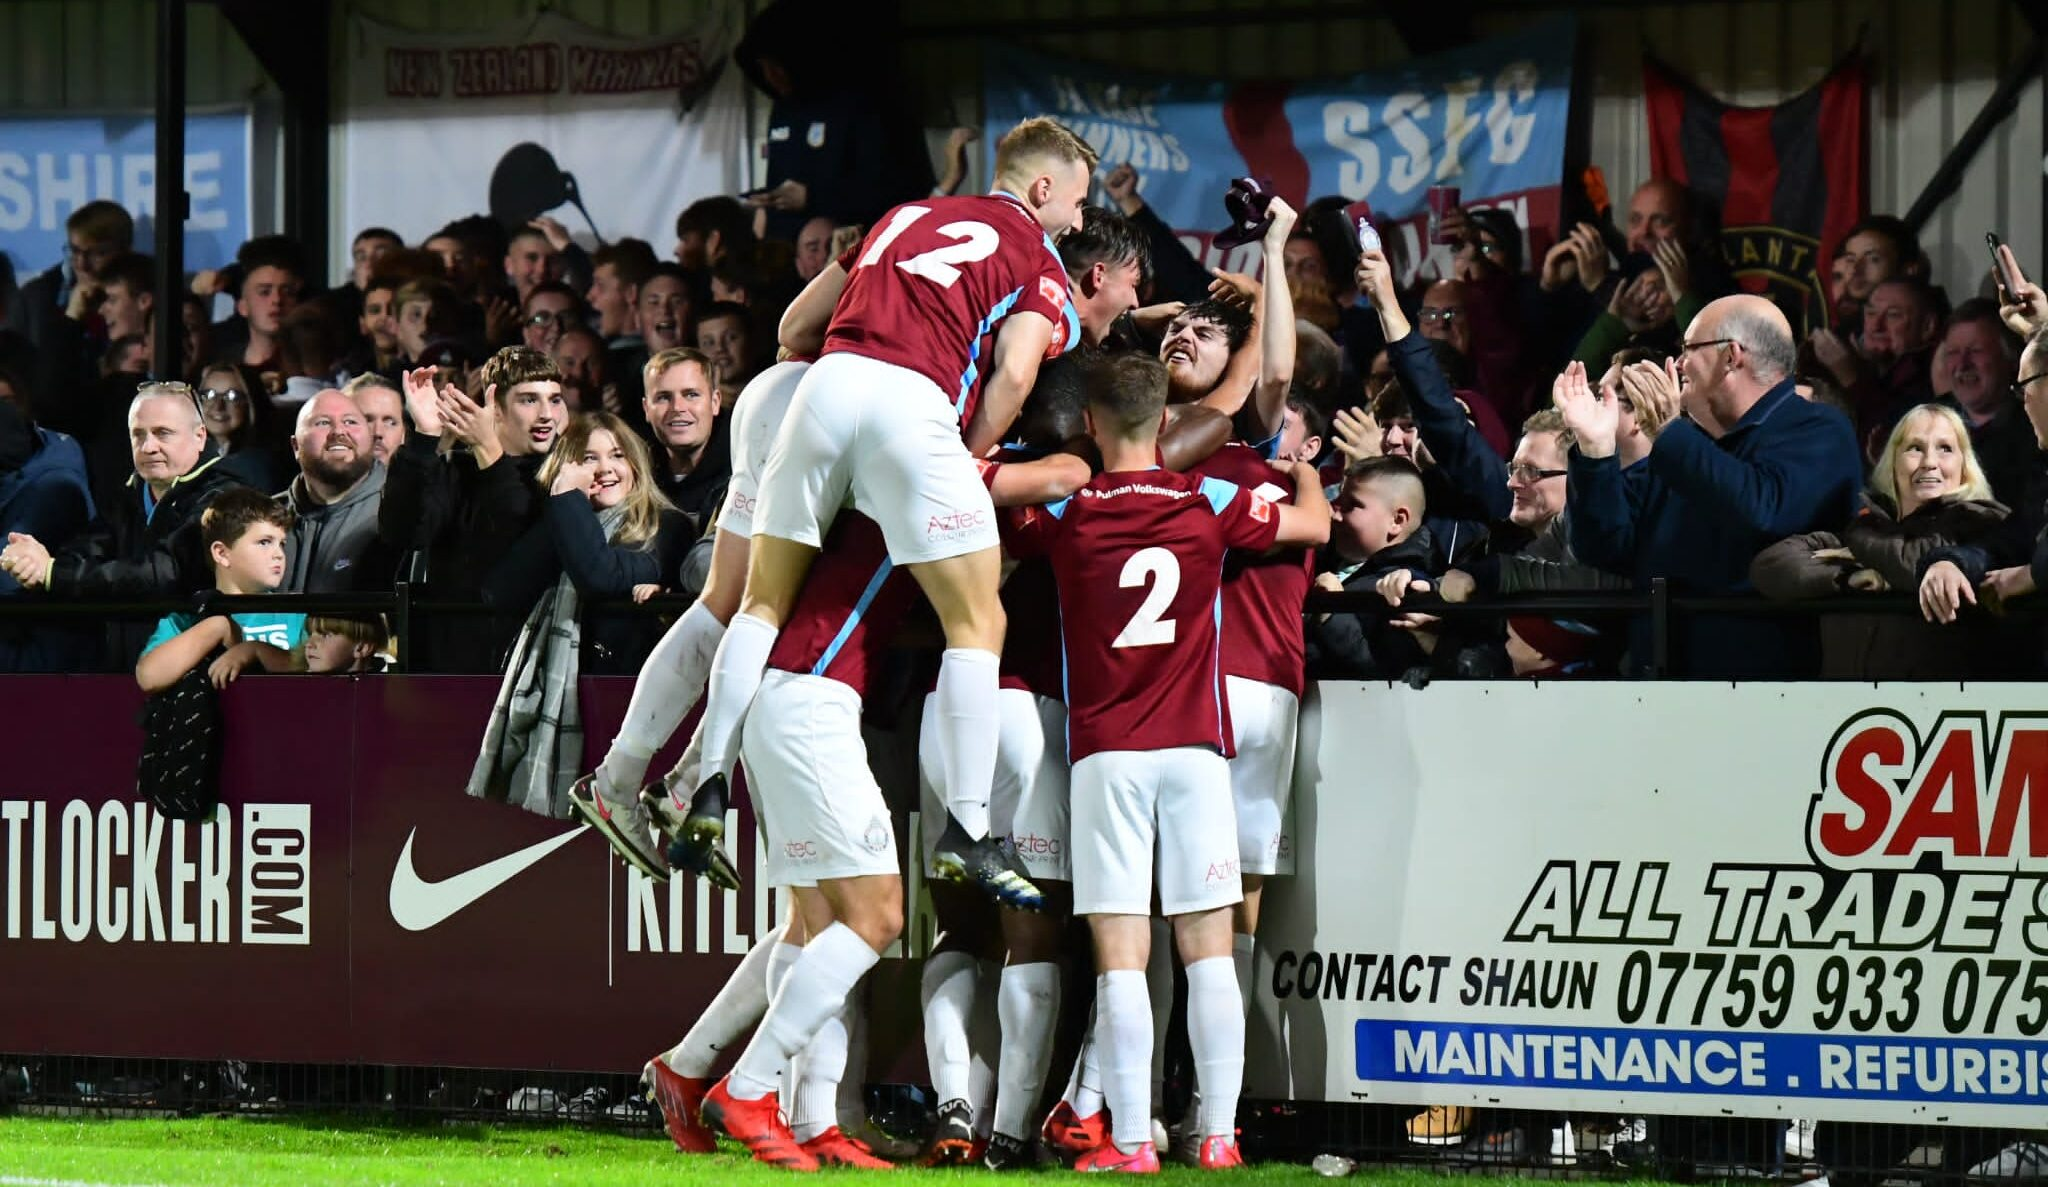 Match Report: South Shields 2-0 Morpeth Town